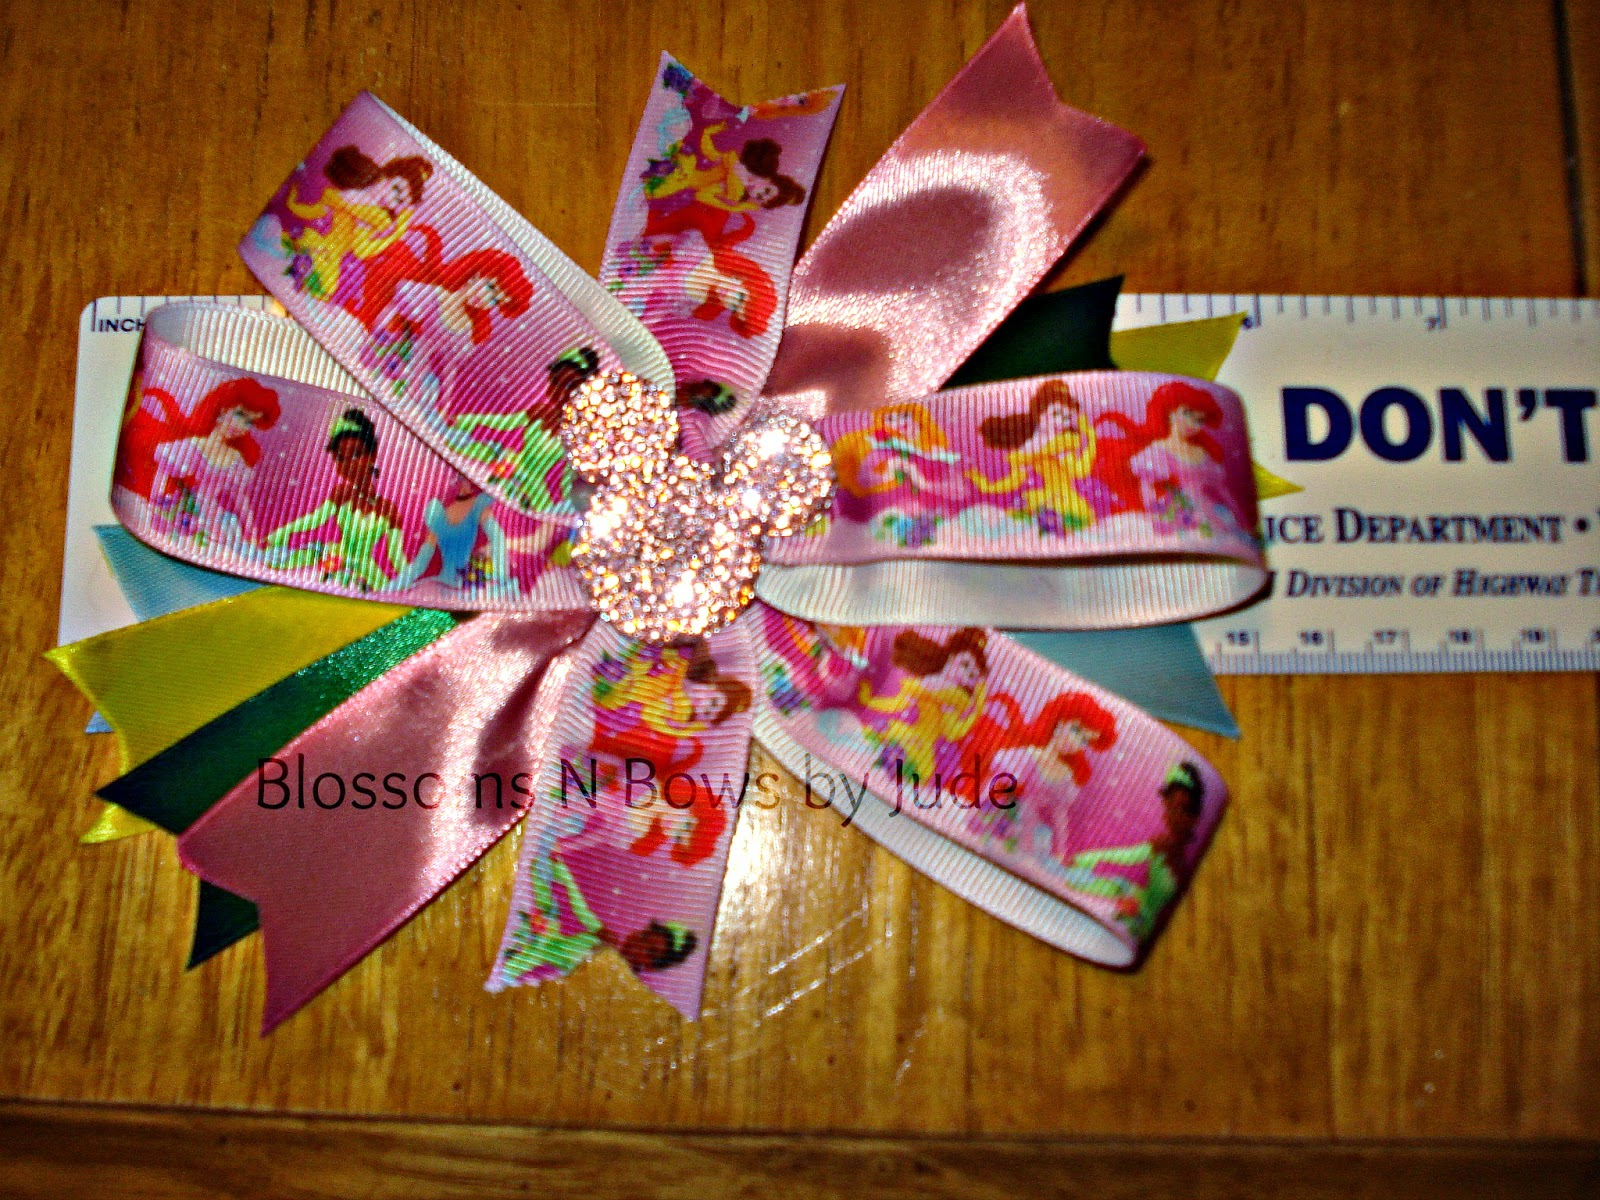 http://www.ebay.com/itm/Disney-Princess-Hair-Bow-U-choose-headband-alligator-clip-Free-Shipping-/151273266668?pt=US_Girls_Accessories&hash=item233896ddec